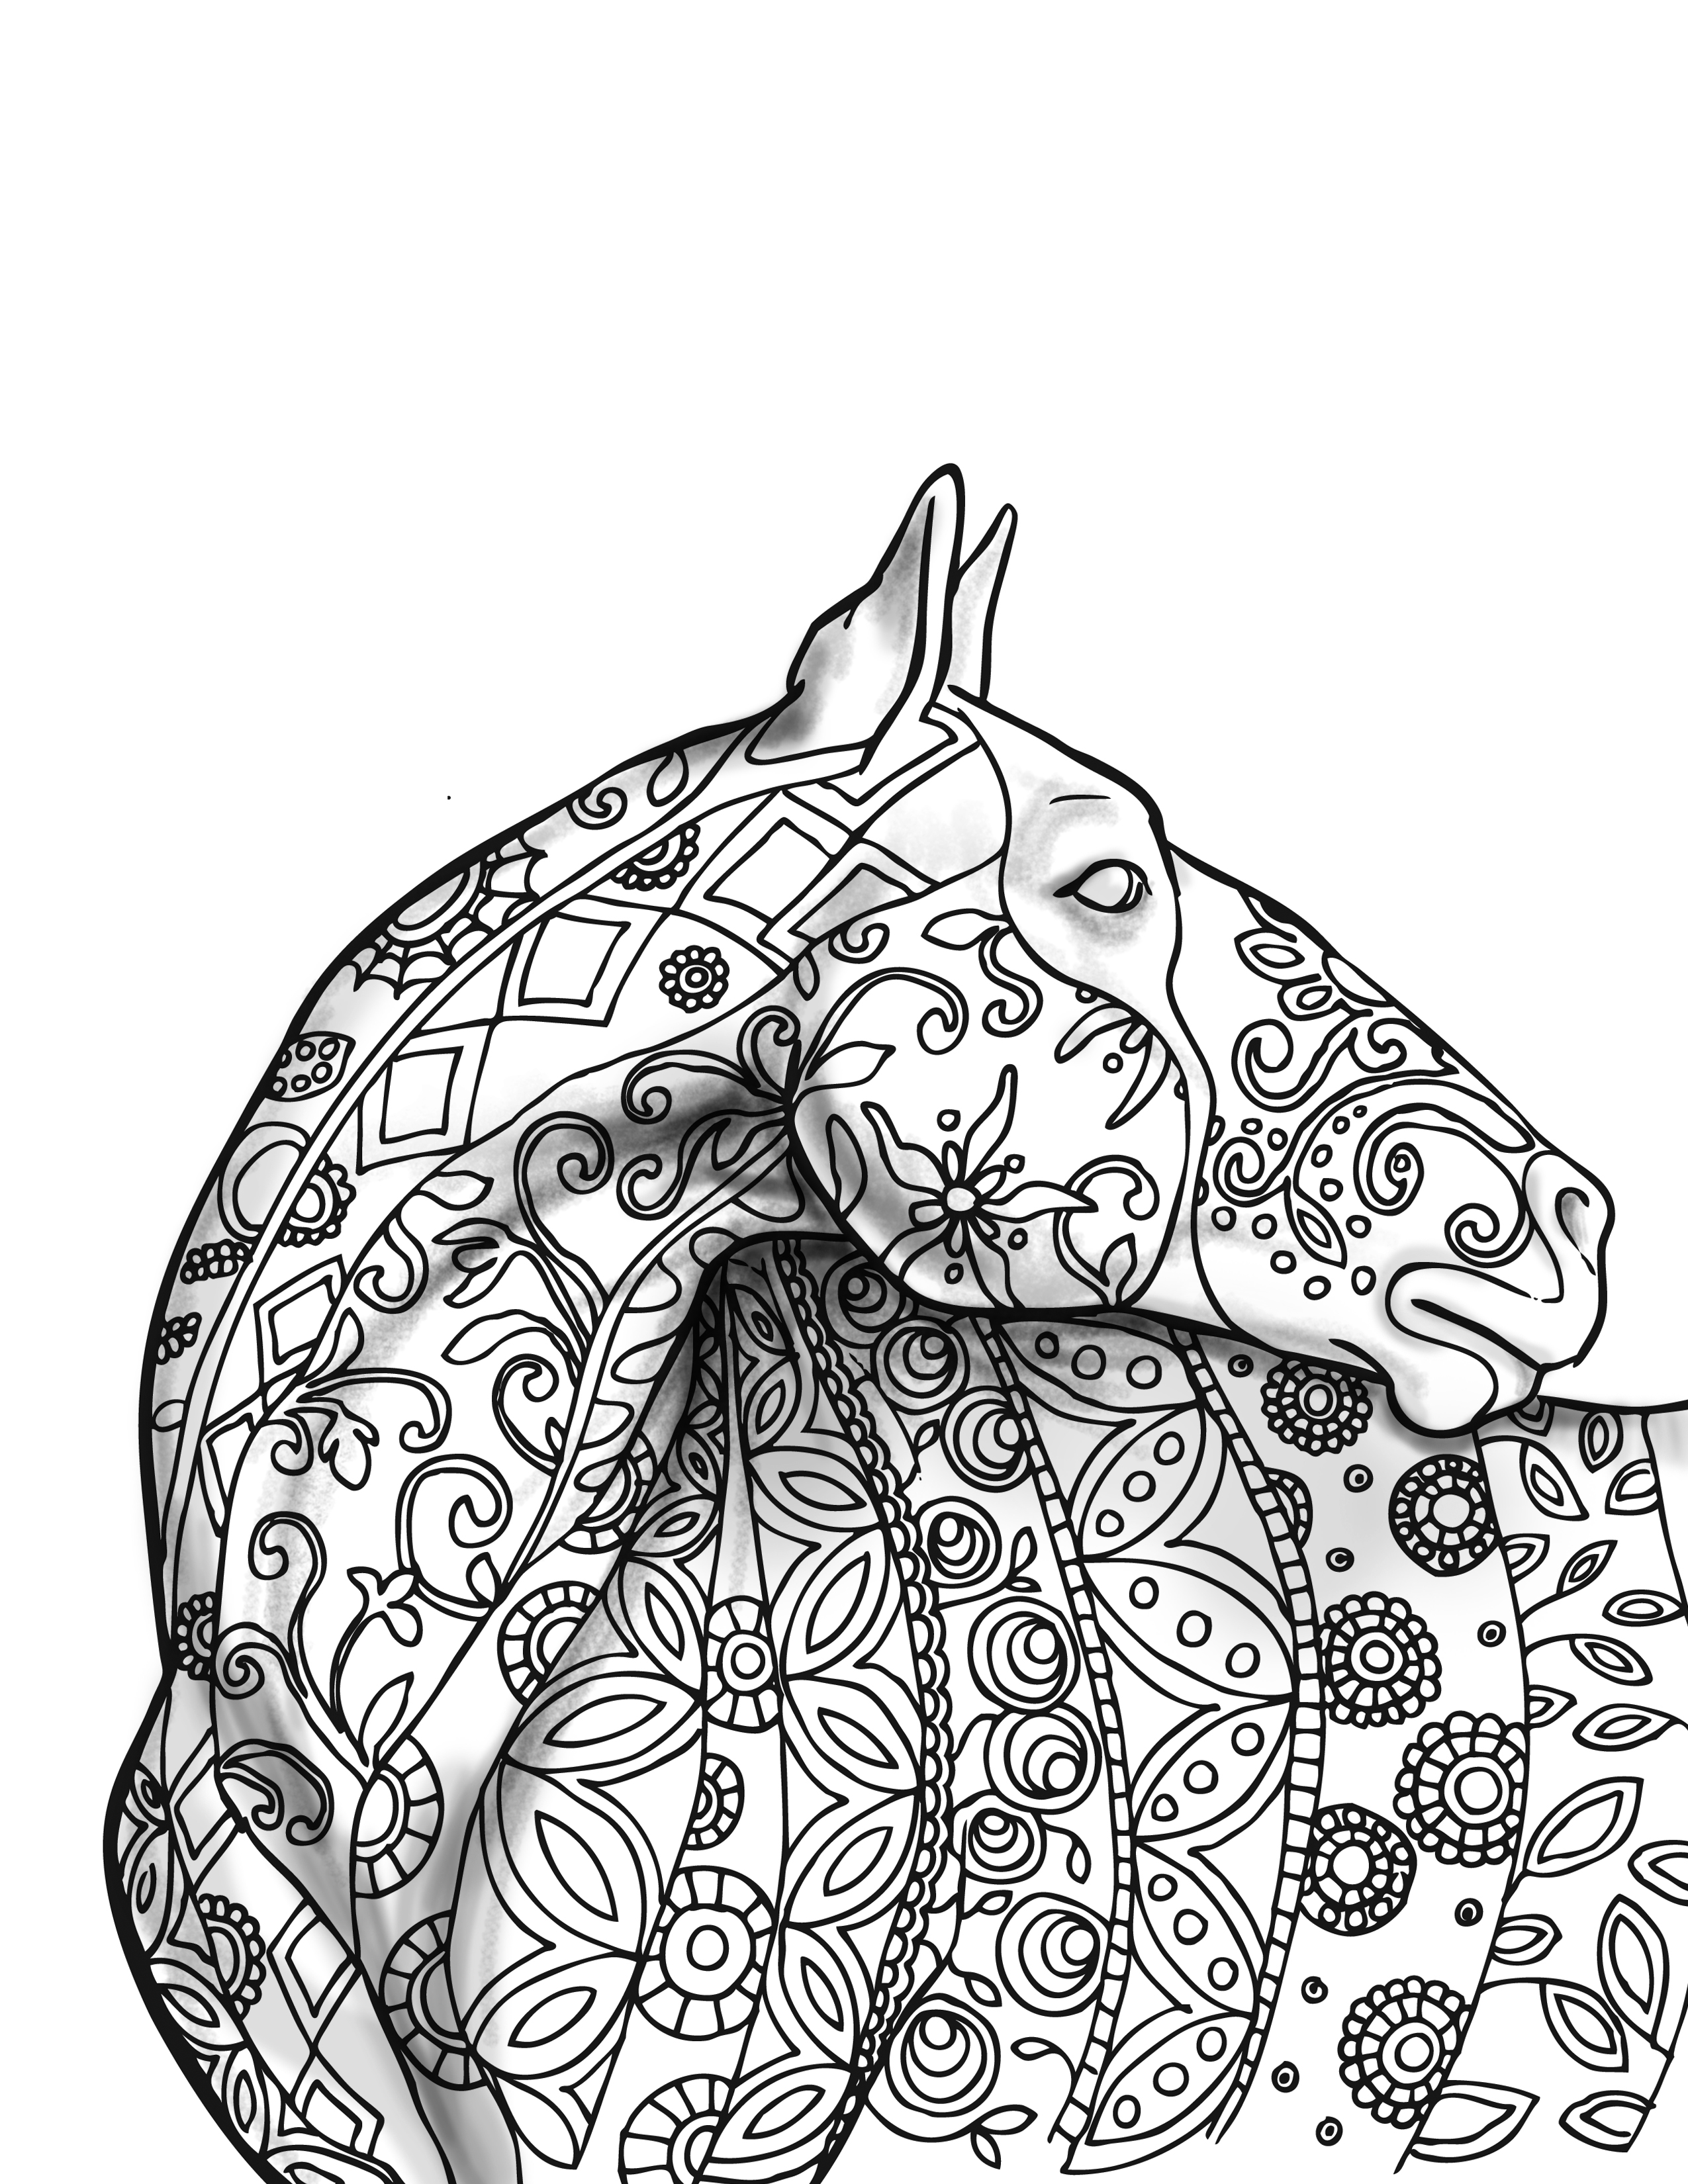 online free coloring pages for adults | Coloring Book samples | Selah Works - Adult Coloring Books